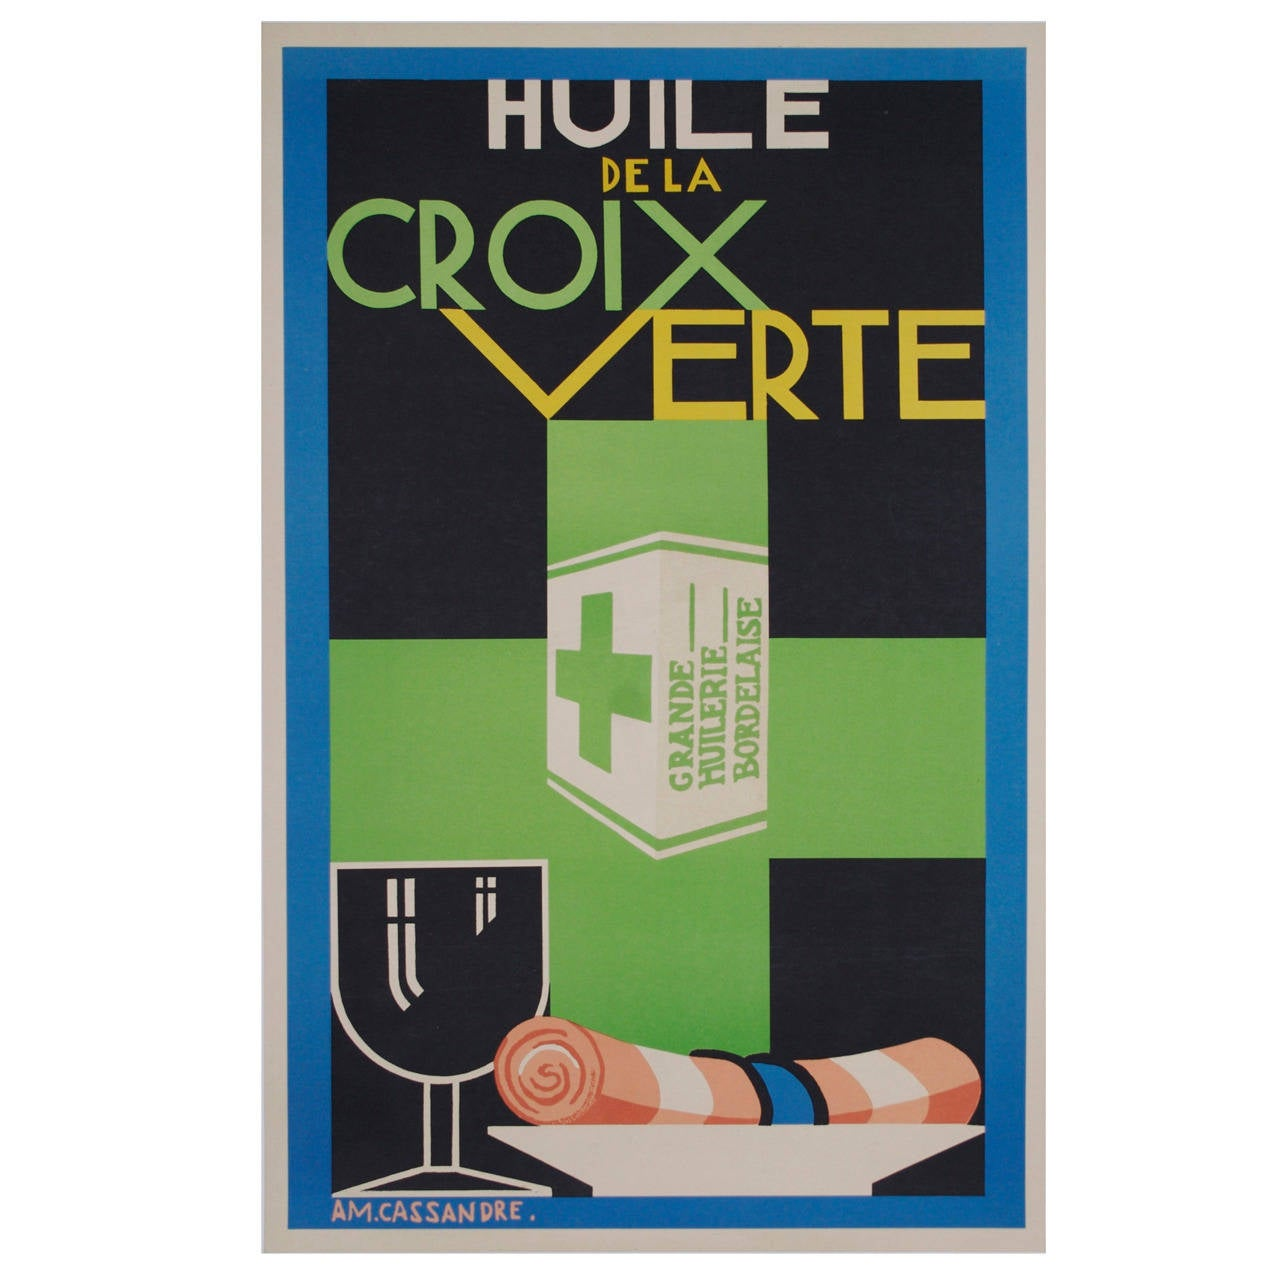 French art deco period poster by a m cassandre 1925 at for Art deco era dates